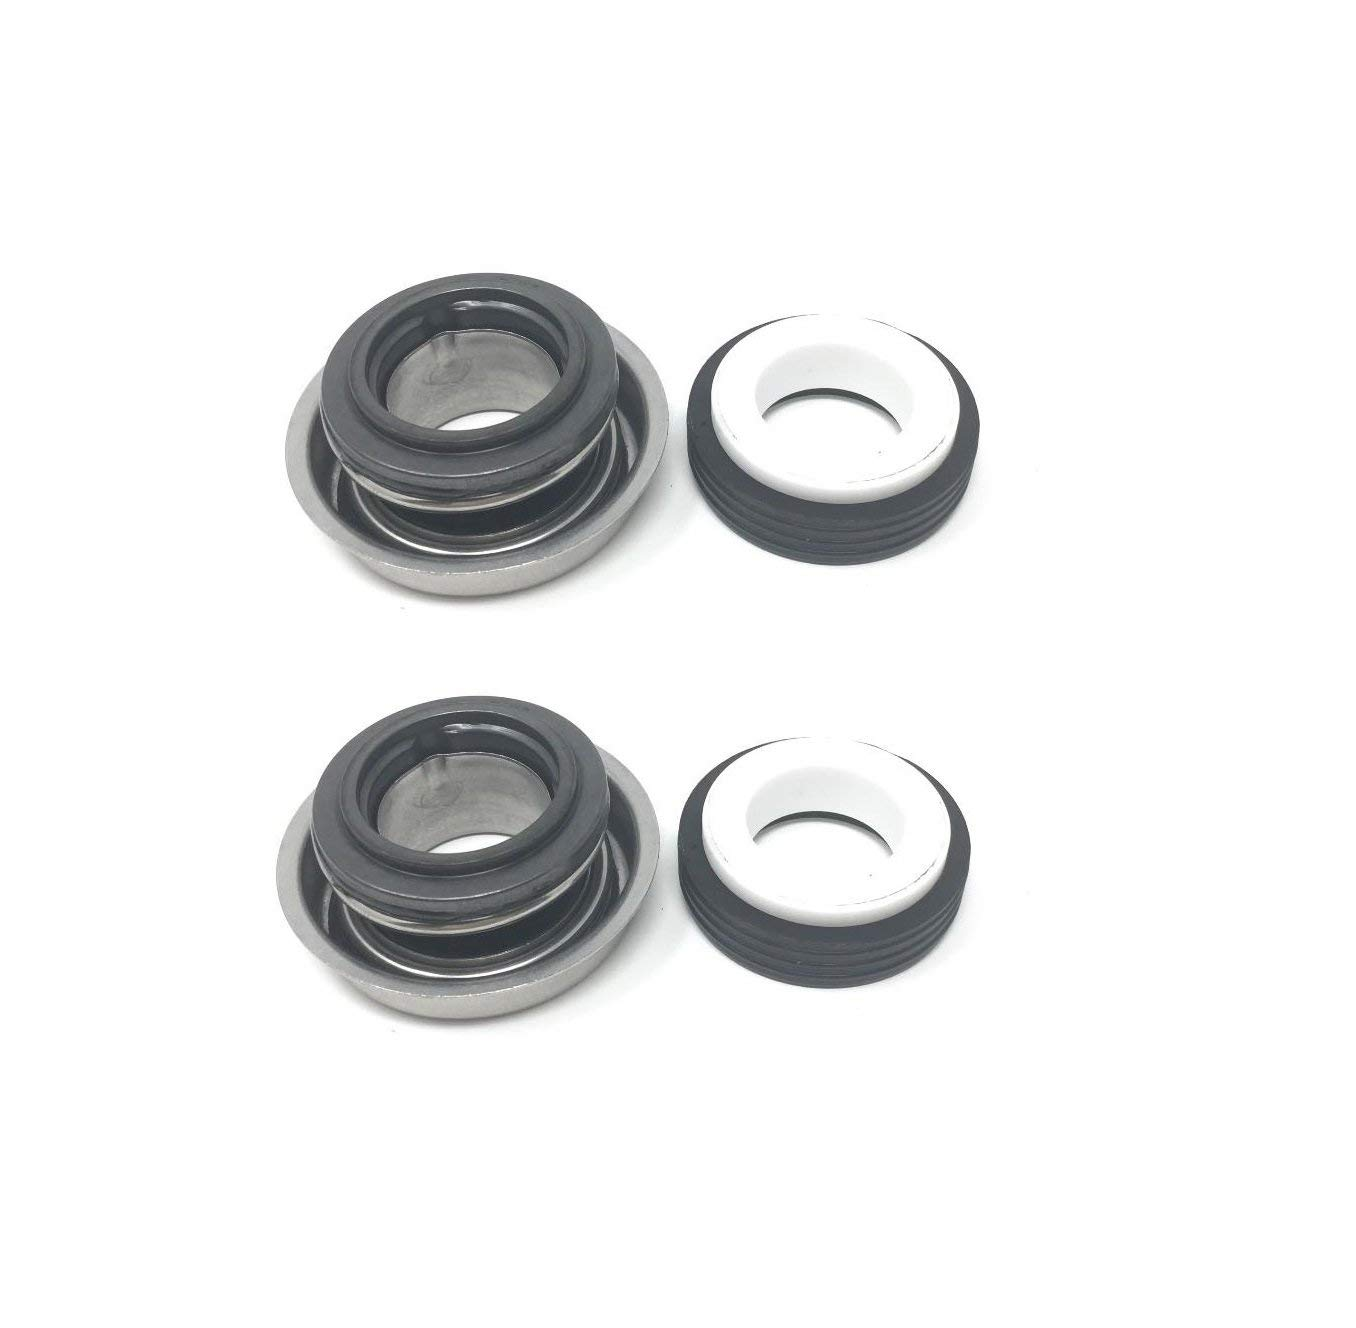 Jacuzzi Pool Pump Seal Kit Cheap Pump Shaft Seal Replacement Find Pump Shaft Seal